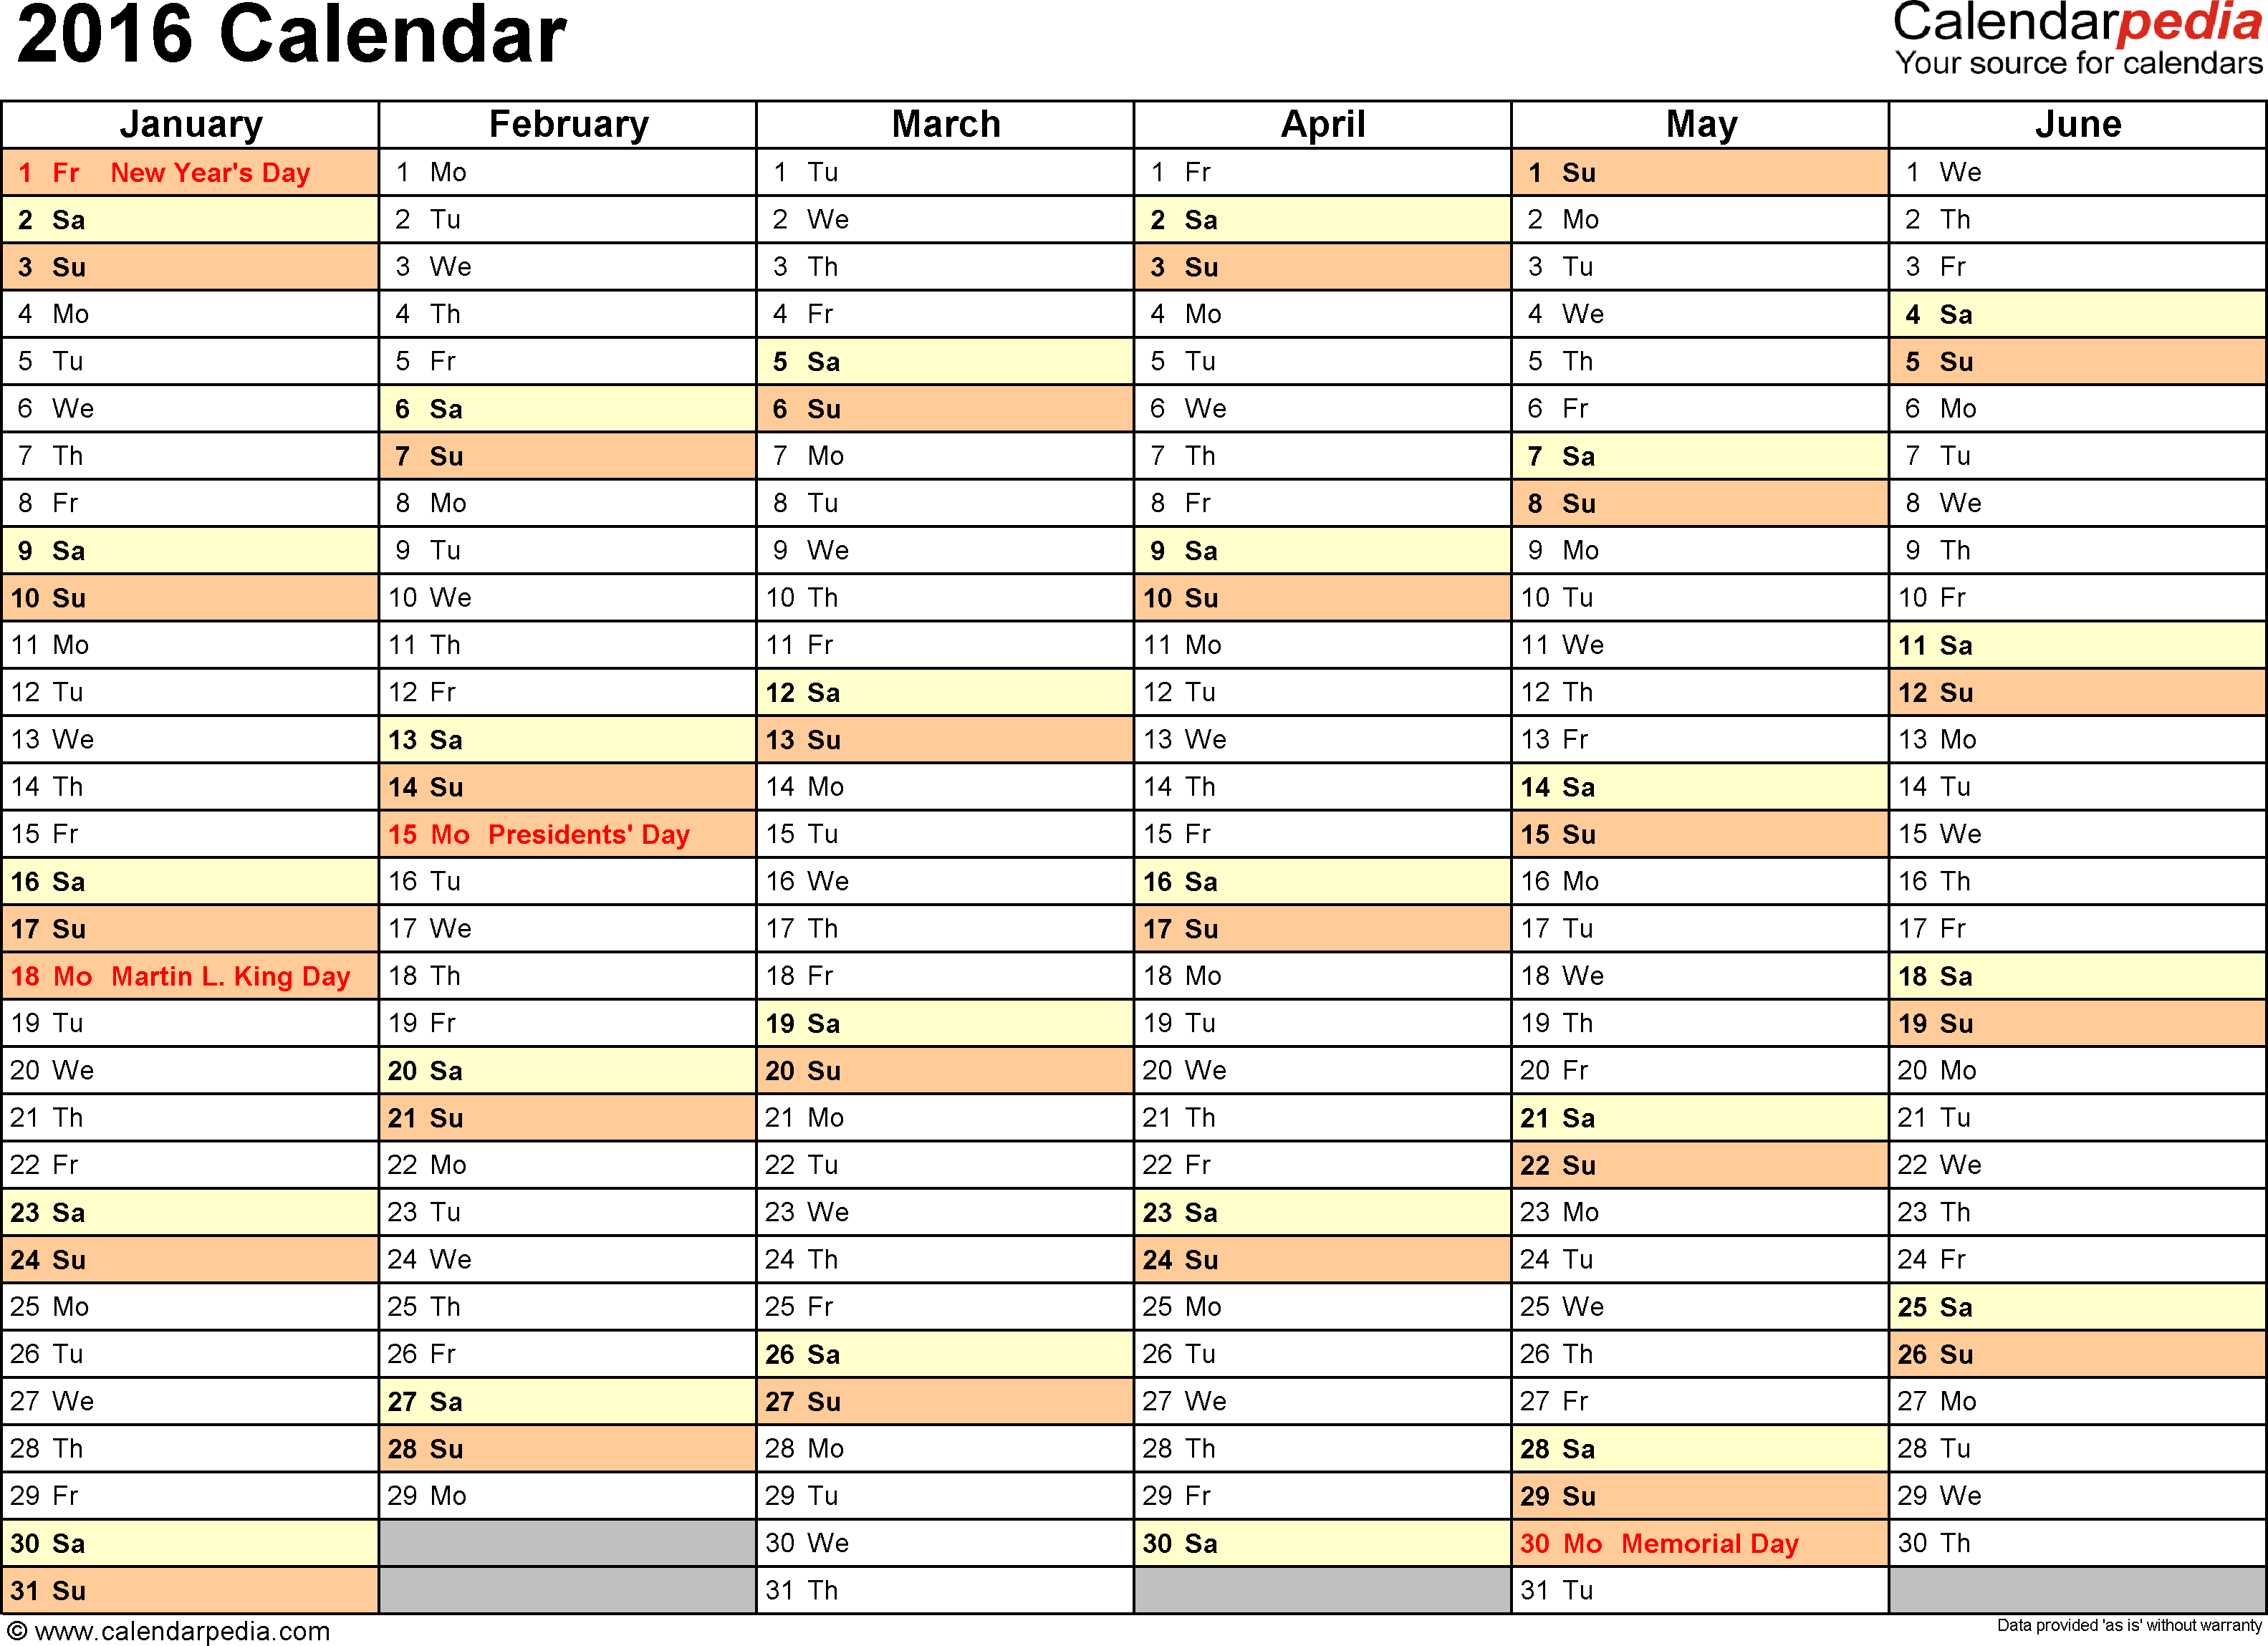 Ediblewildsus  Inspiring  Calendar  Download  Free Printable Excel Templates Xls With Lovely Template   Calendar For Excel Months Horizontally  Pages Landscape Orientation With Appealing Fortune  List Excel Also Simple Profit And Loss Excel Template In Addition Shortcut Key Of Filter In Excel And Recover Password For Excel File As Well As Saving Macros In Excel  Additionally Roadmap Excel Template Free From Calendarpediacom With Ediblewildsus  Lovely  Calendar  Download  Free Printable Excel Templates Xls With Appealing Template   Calendar For Excel Months Horizontally  Pages Landscape Orientation And Inspiring Fortune  List Excel Also Simple Profit And Loss Excel Template In Addition Shortcut Key Of Filter In Excel From Calendarpediacom